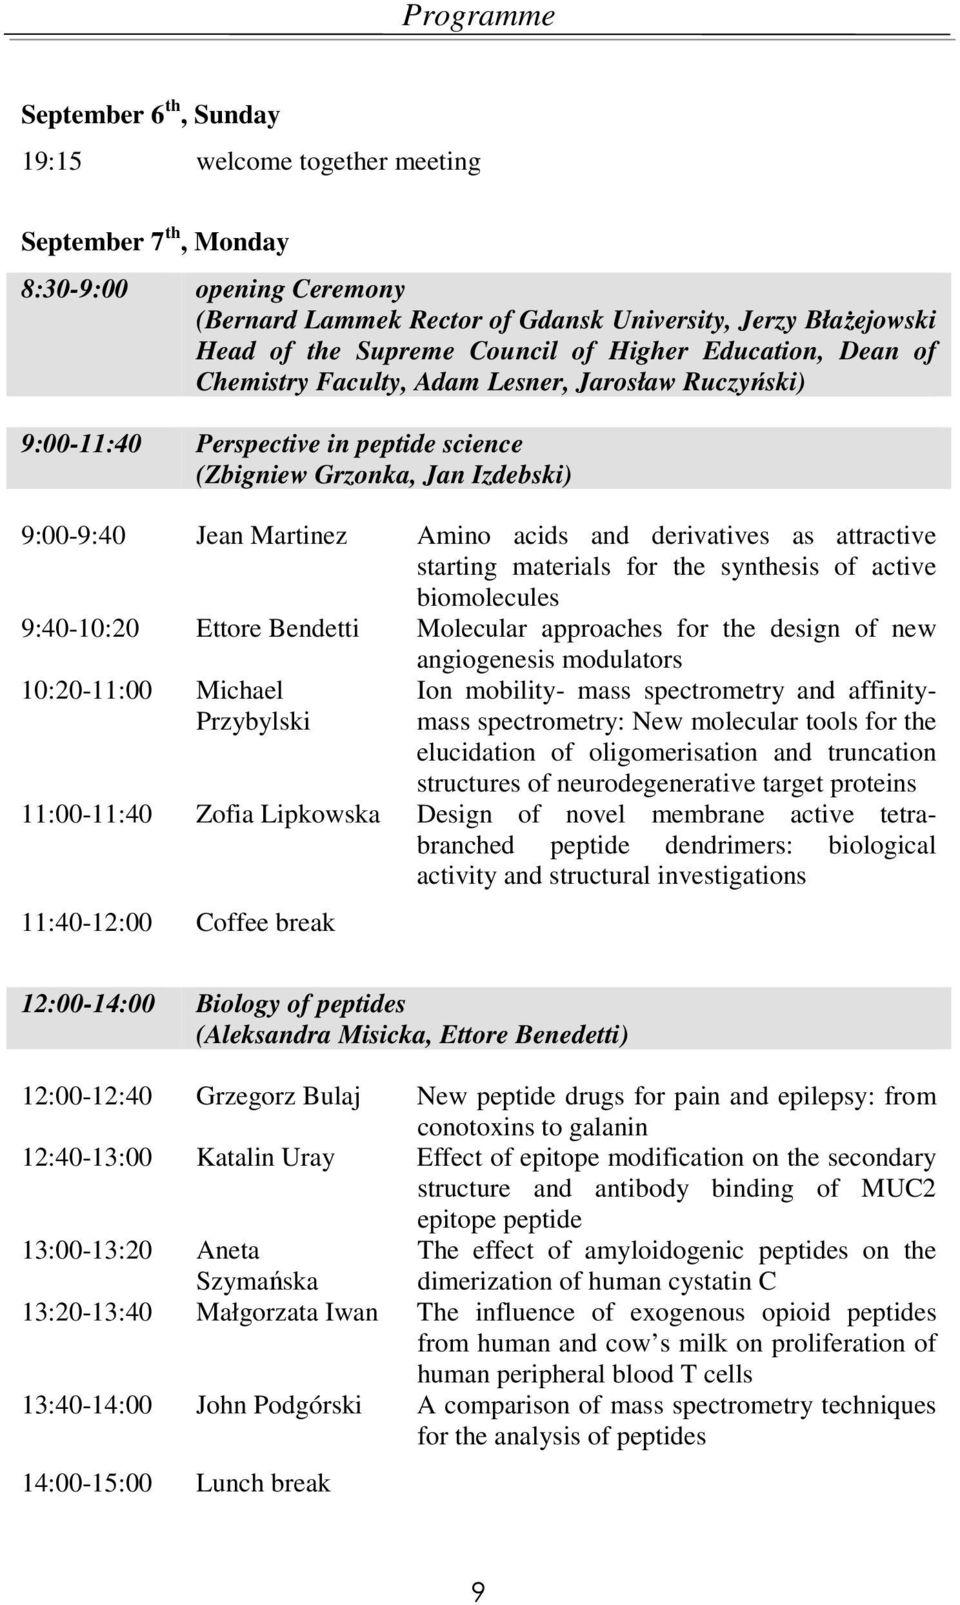 and derivatives as attractive starting materials for the synthesis of active biomolecules 9:40-10:20 Ettore Bendetti Molecular approaches for the design of new angiogenesis modulators 10:20-11:00